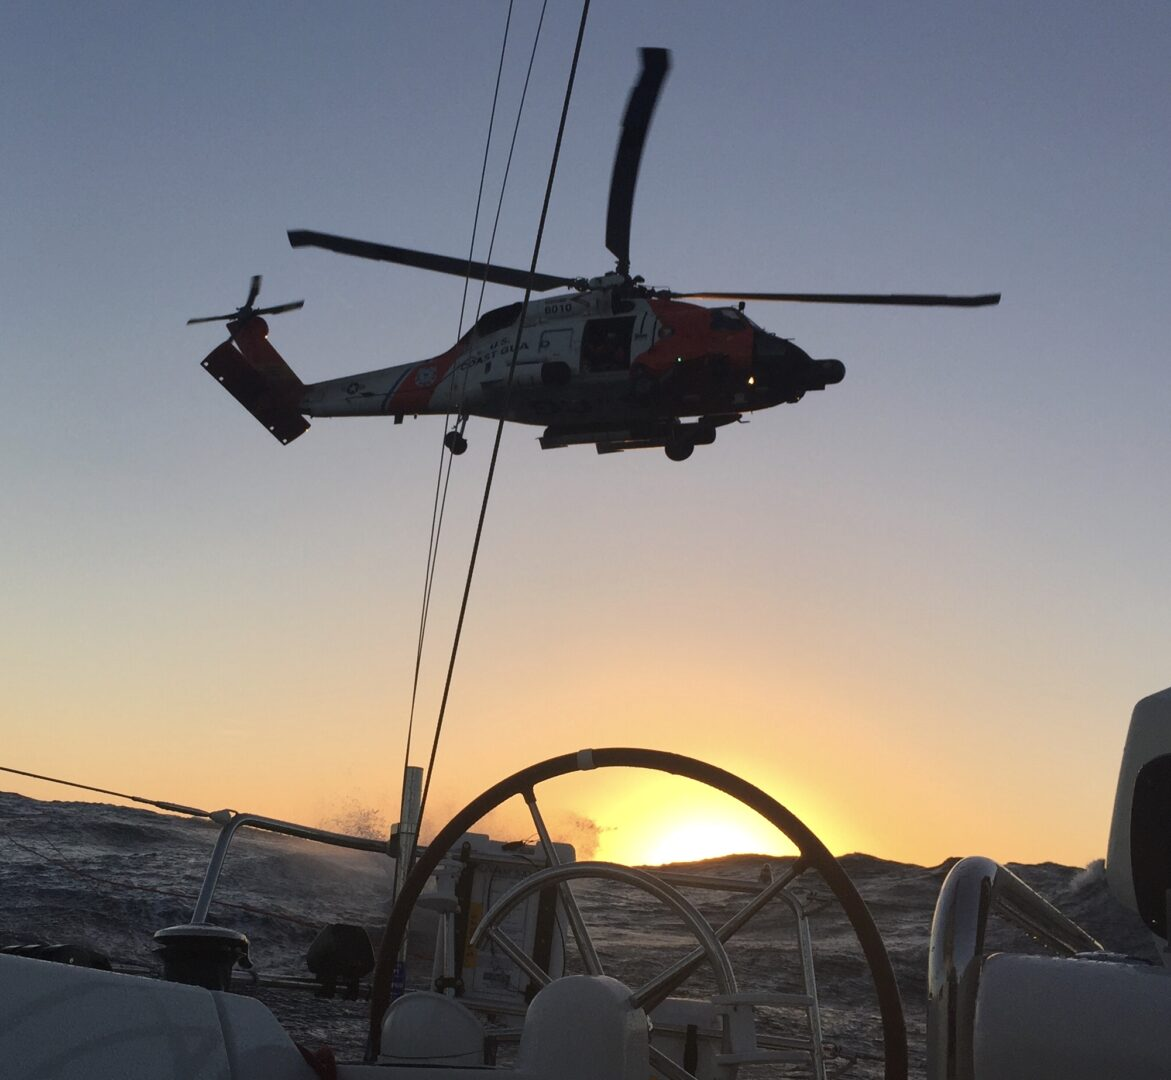 A visit from a USCG helicopter to drop a pump